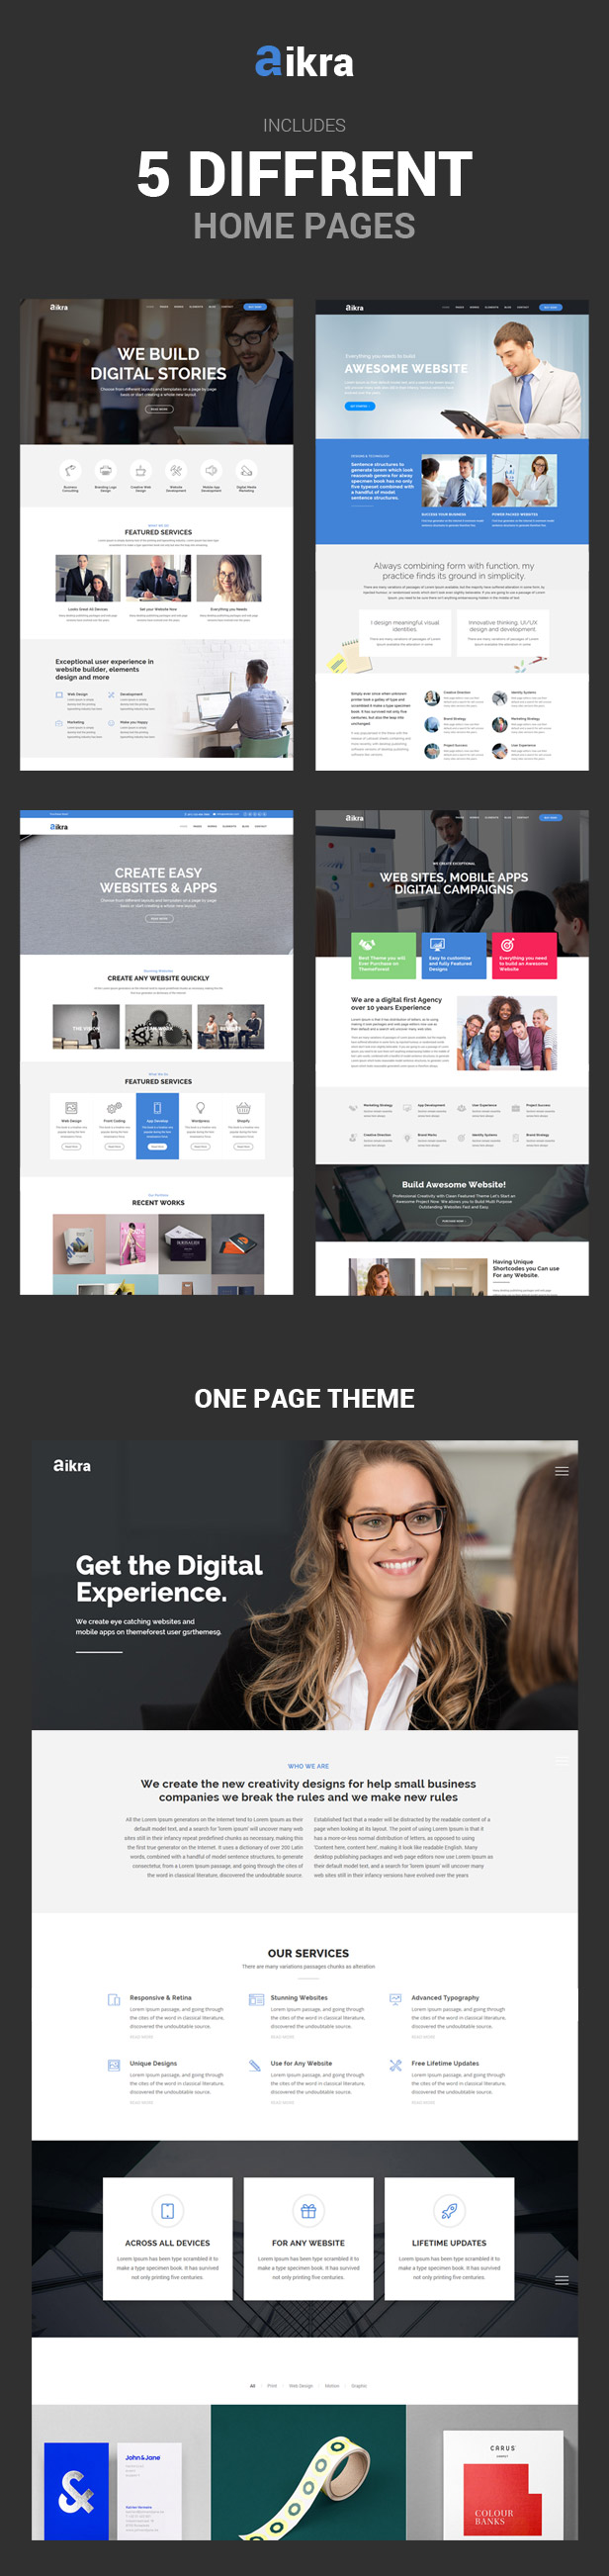 Aikra - The Ultimate Multipurpose Html5 Website Template - 1